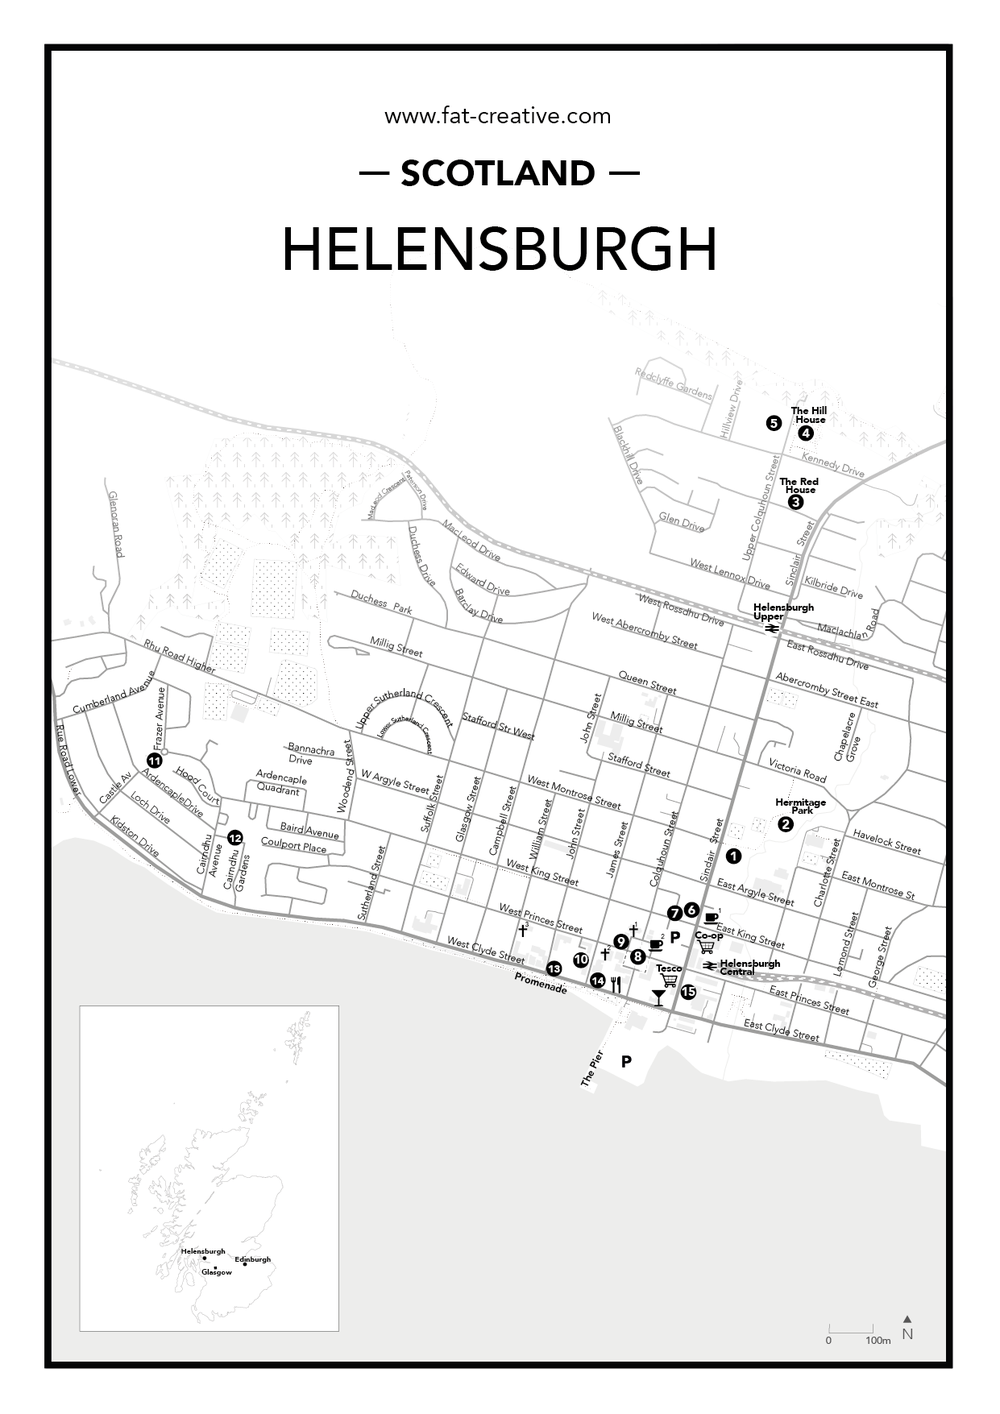 Helensburgh-map-01.png